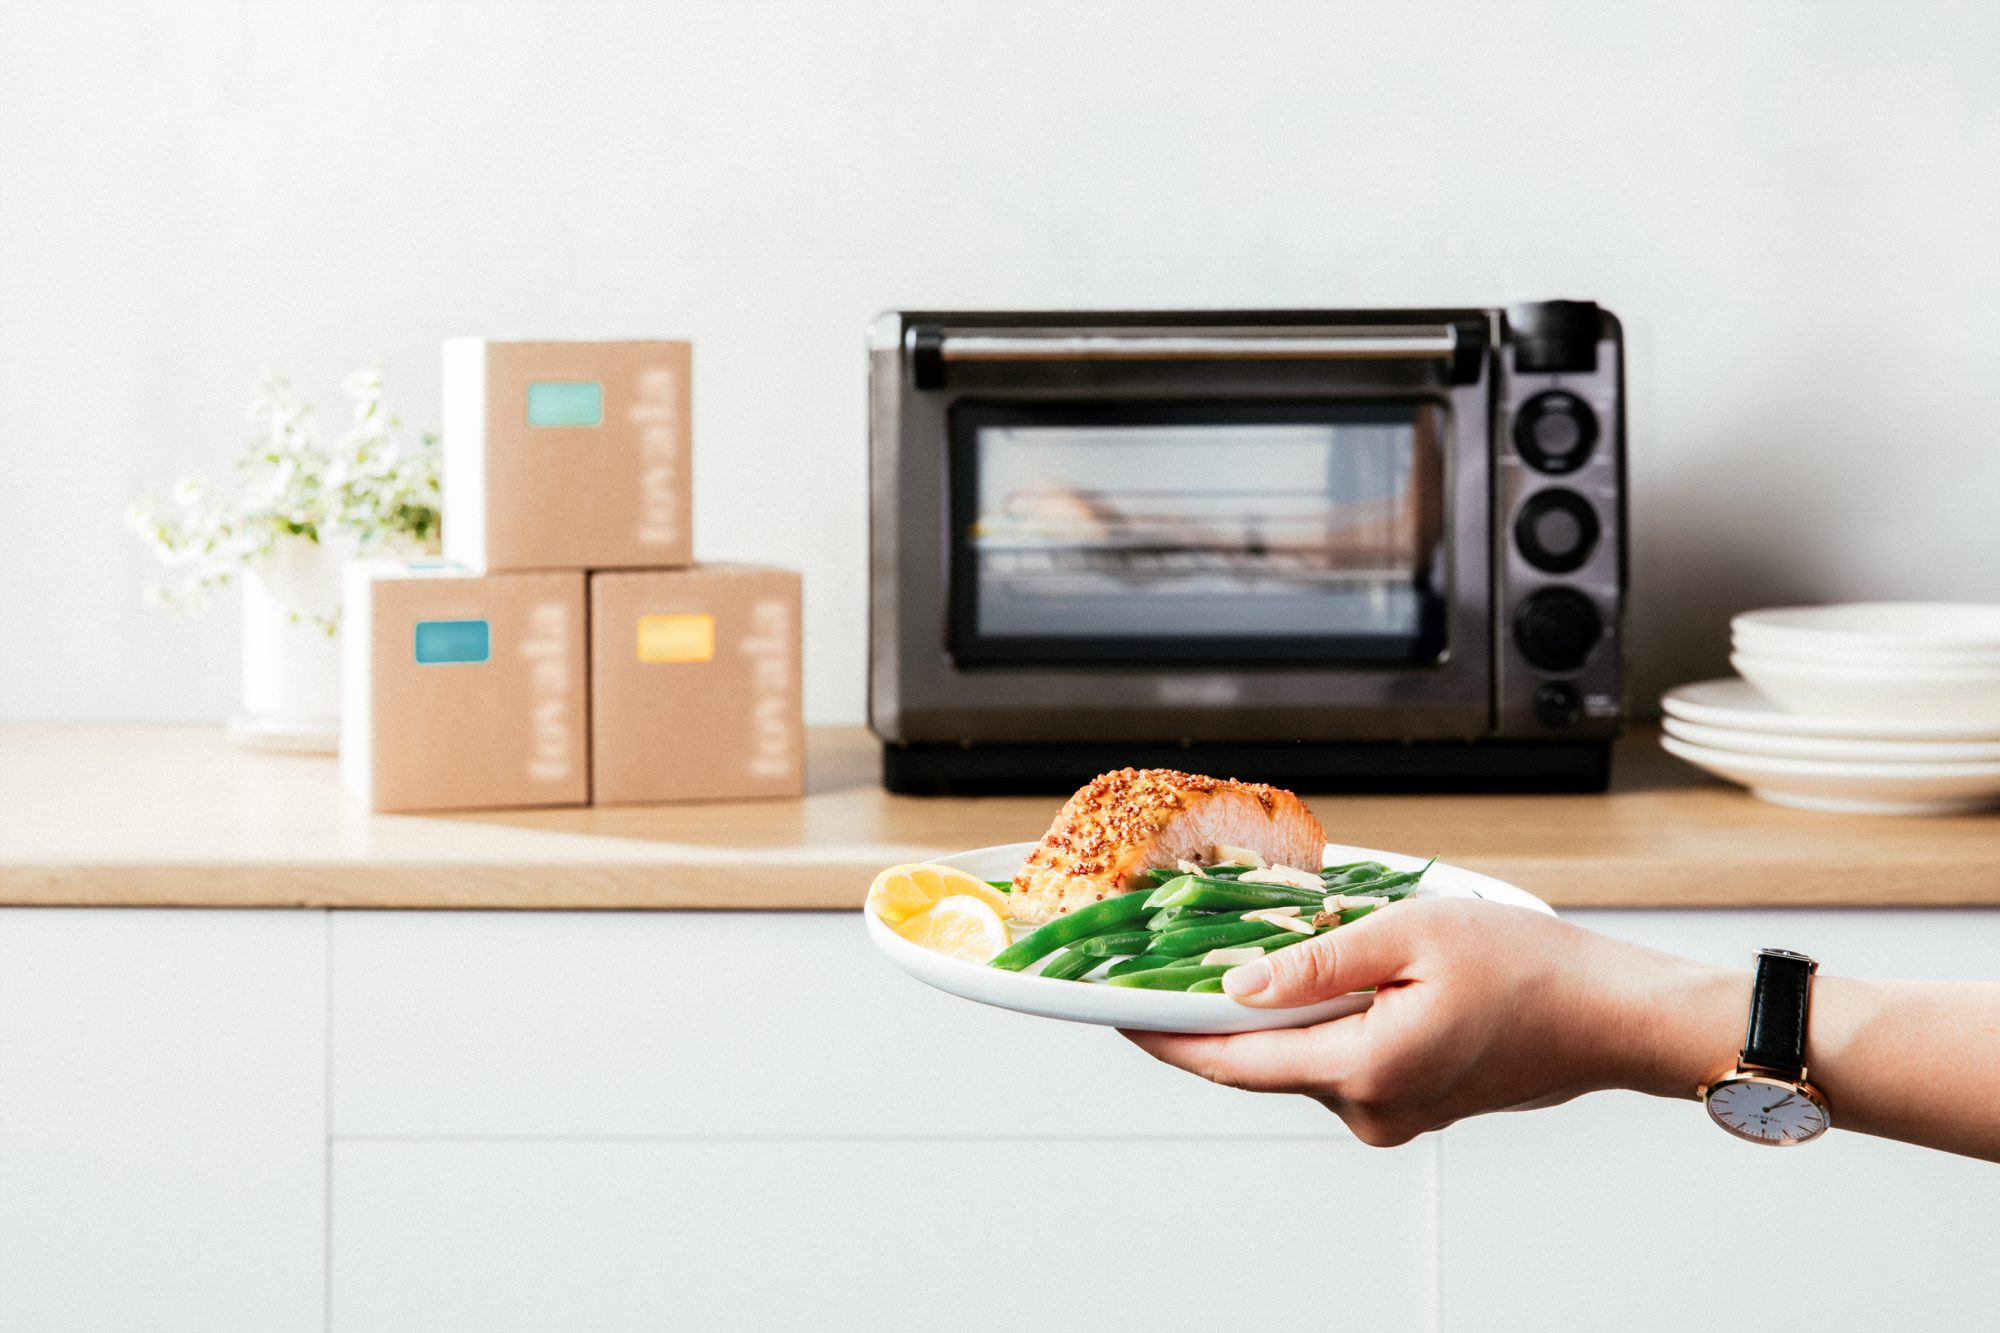 Tovala oven, meal kits and a prepared meal